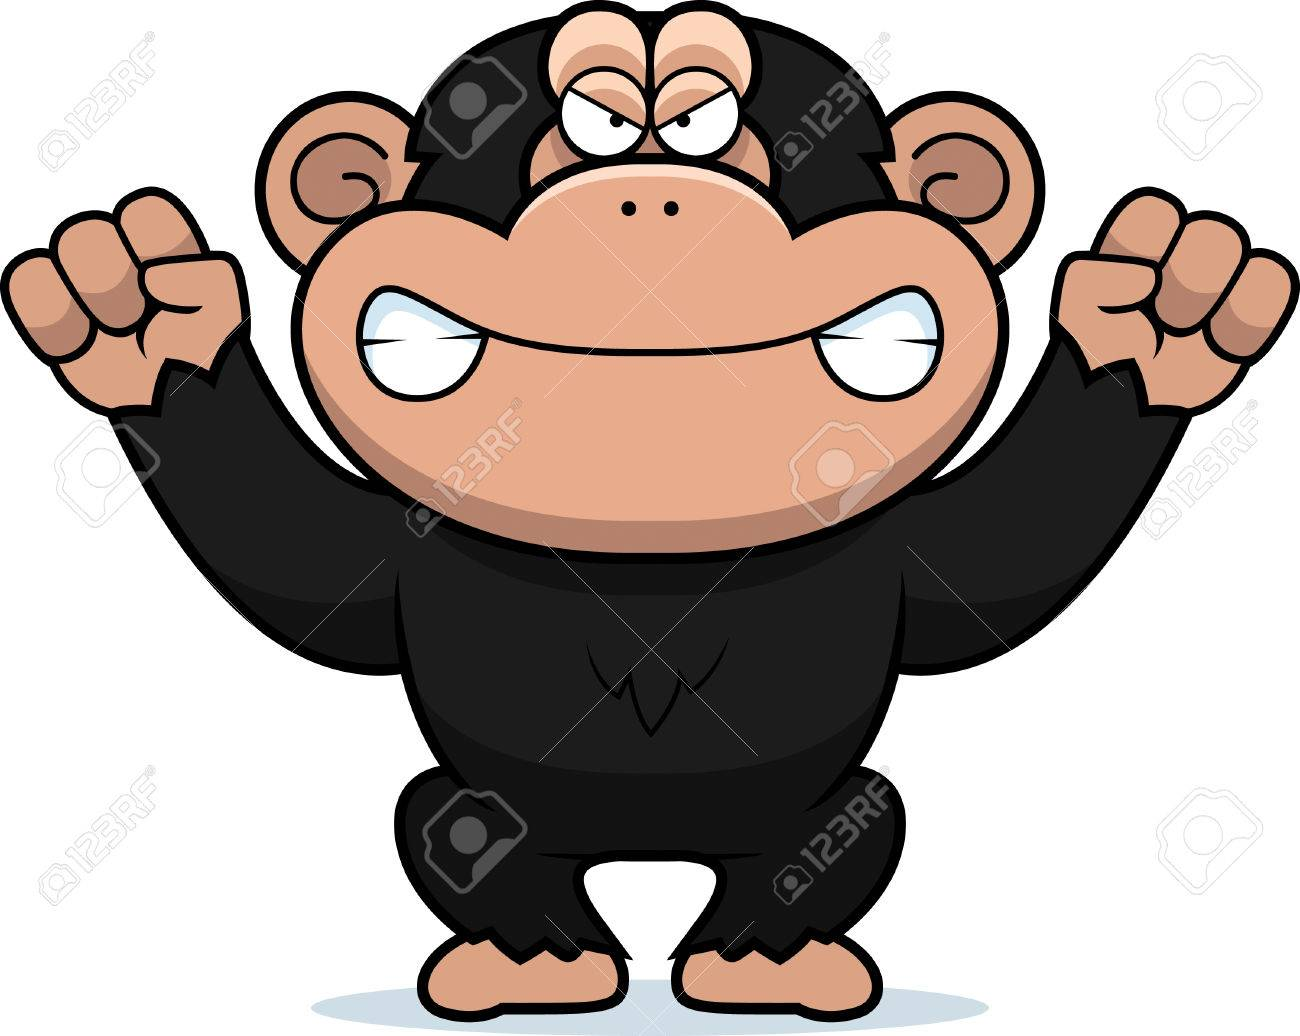 a cartoon illustration of an angry looking chimp royalty free rh 123rf com chimpanzee clipart black and white chimpanzee clipart free